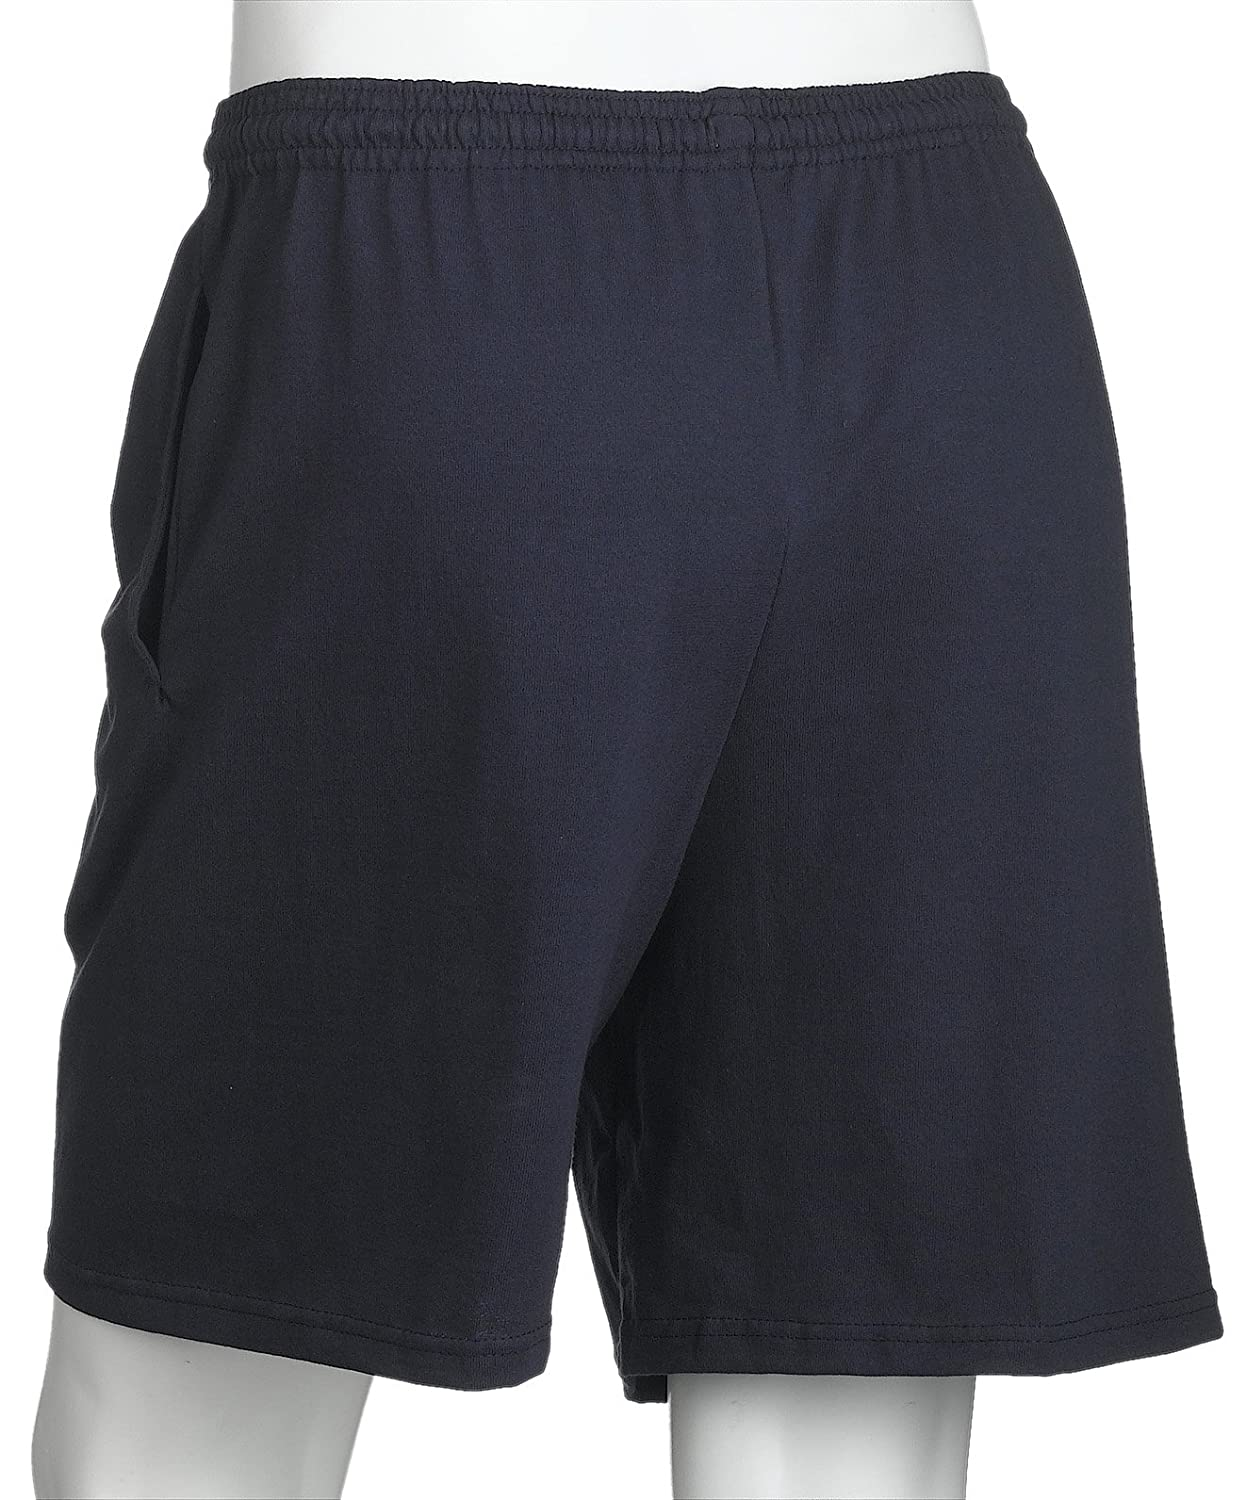 Russell Athletic Mens Cotton Performance Baseline Short Russell Corporation 25843M0